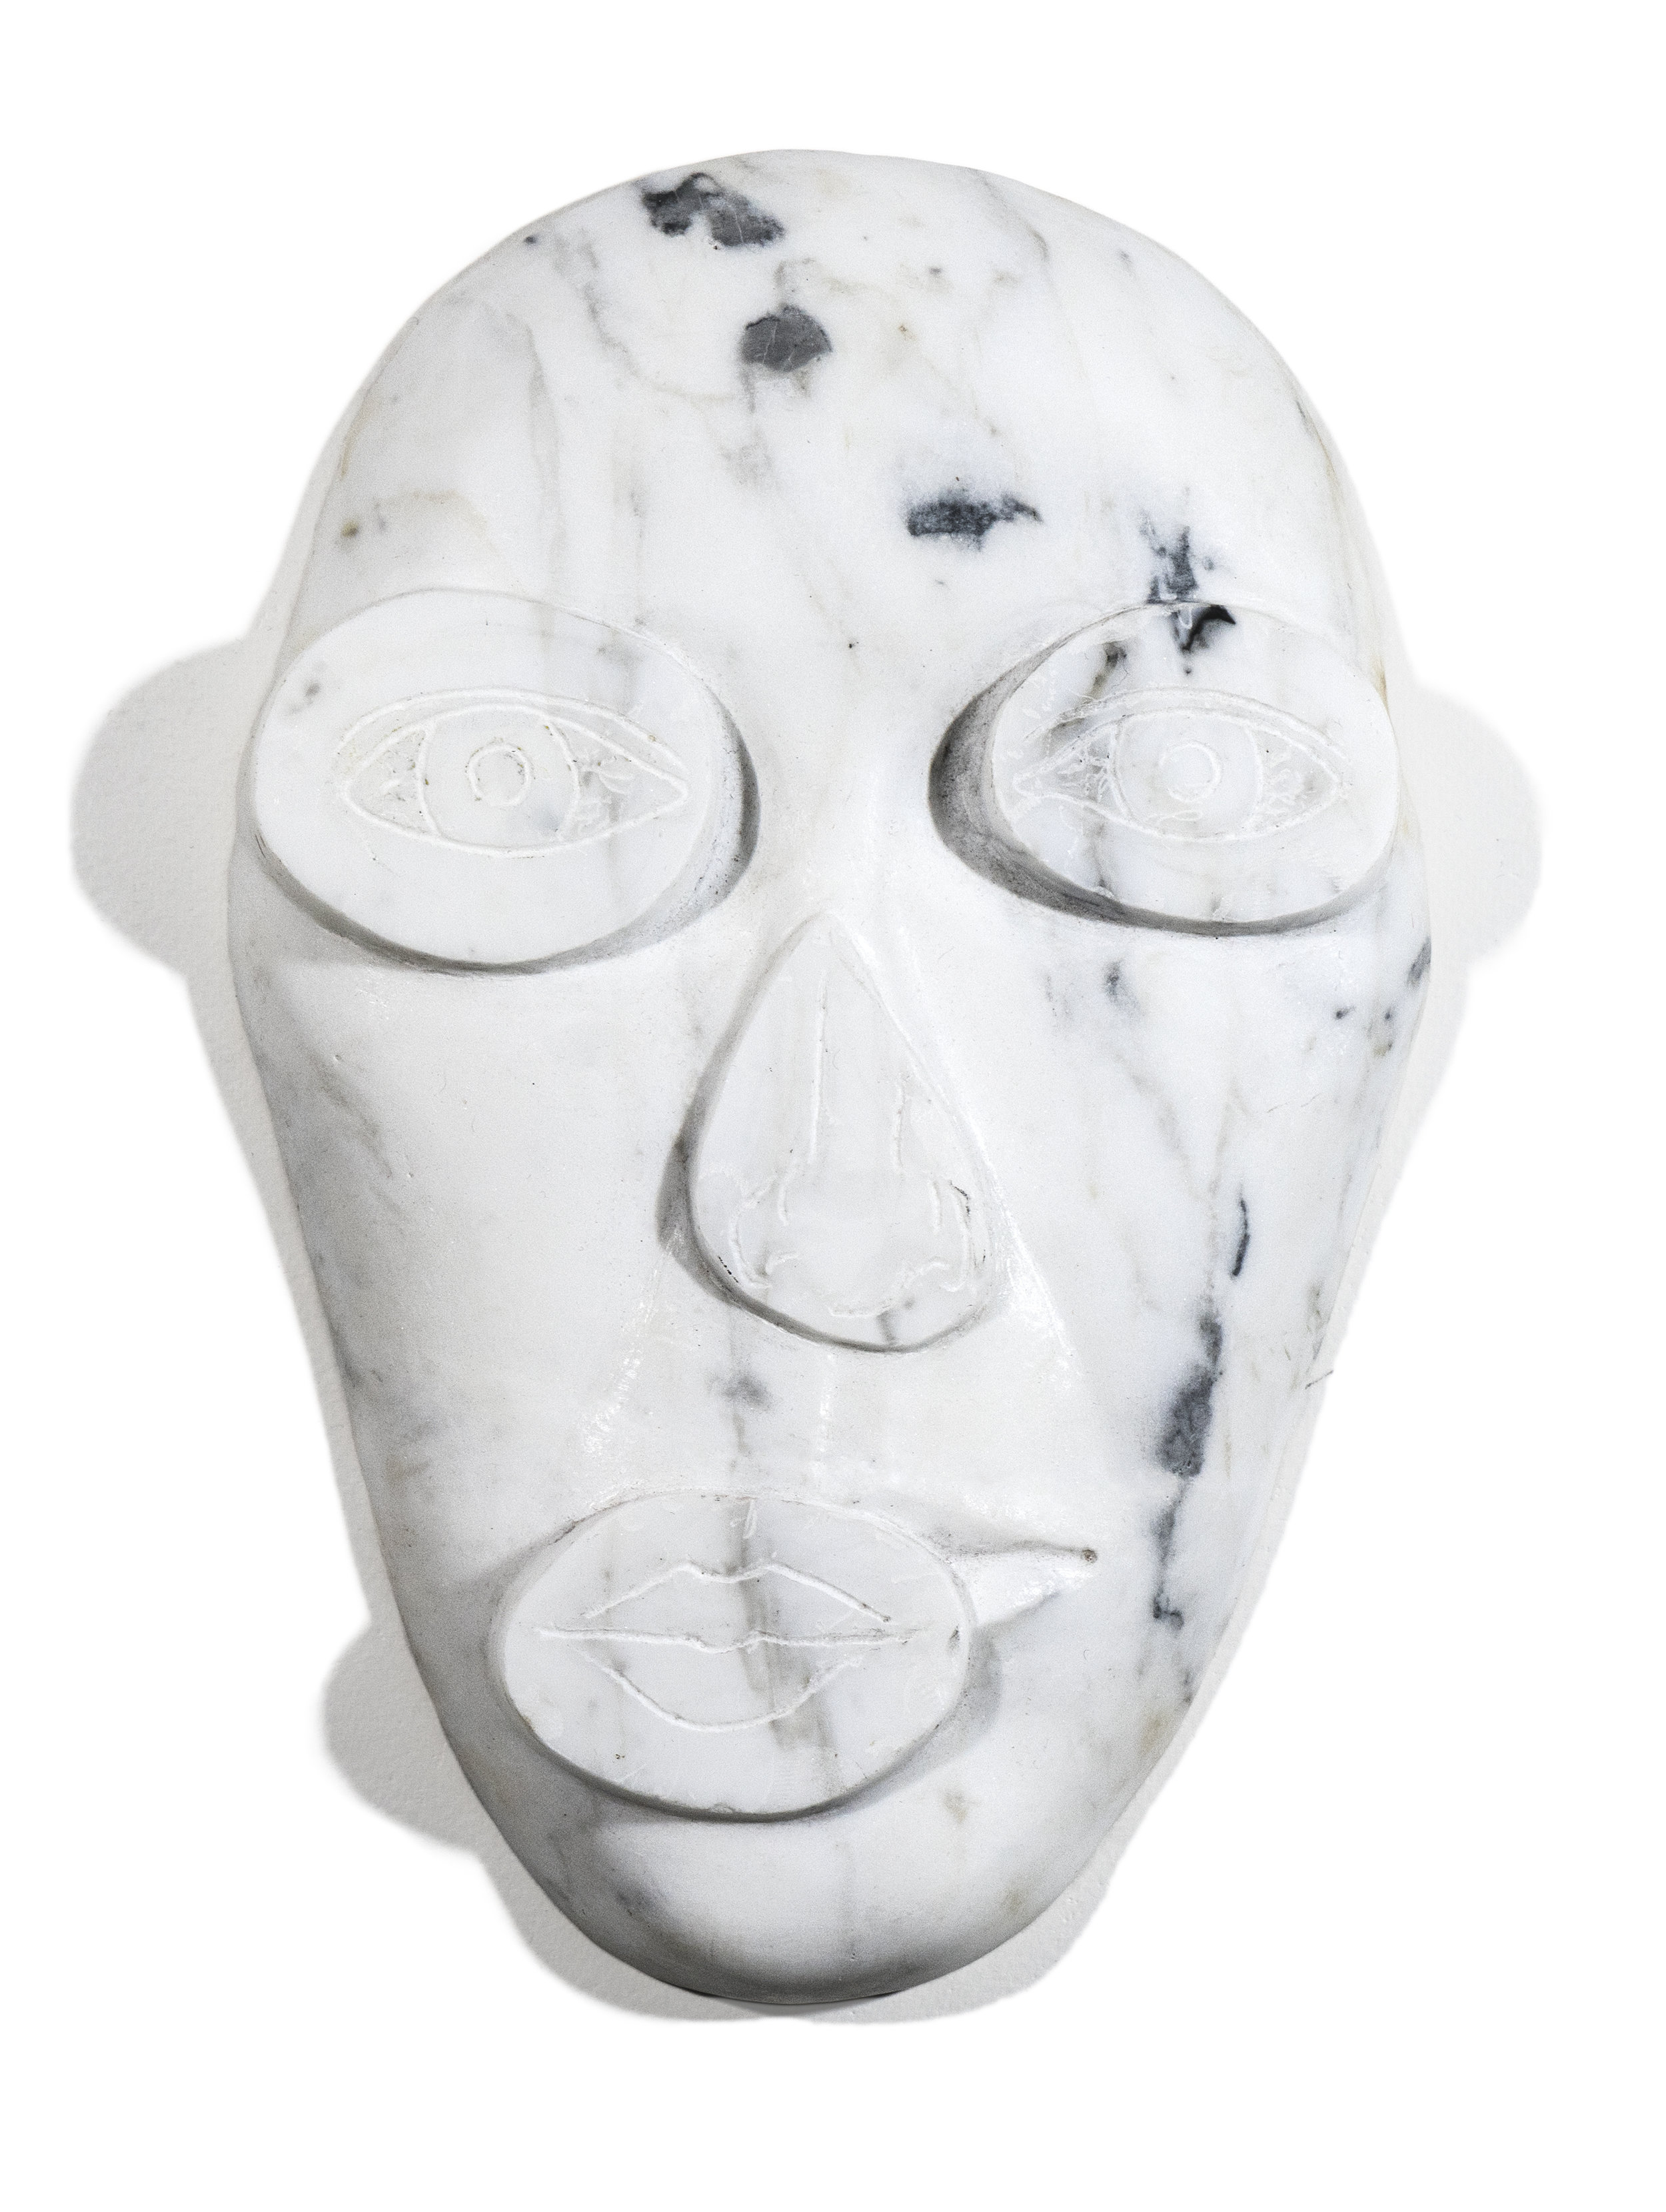 Face Up 2, 2017, Marble, 11 x 7 x 1 1/2 inches